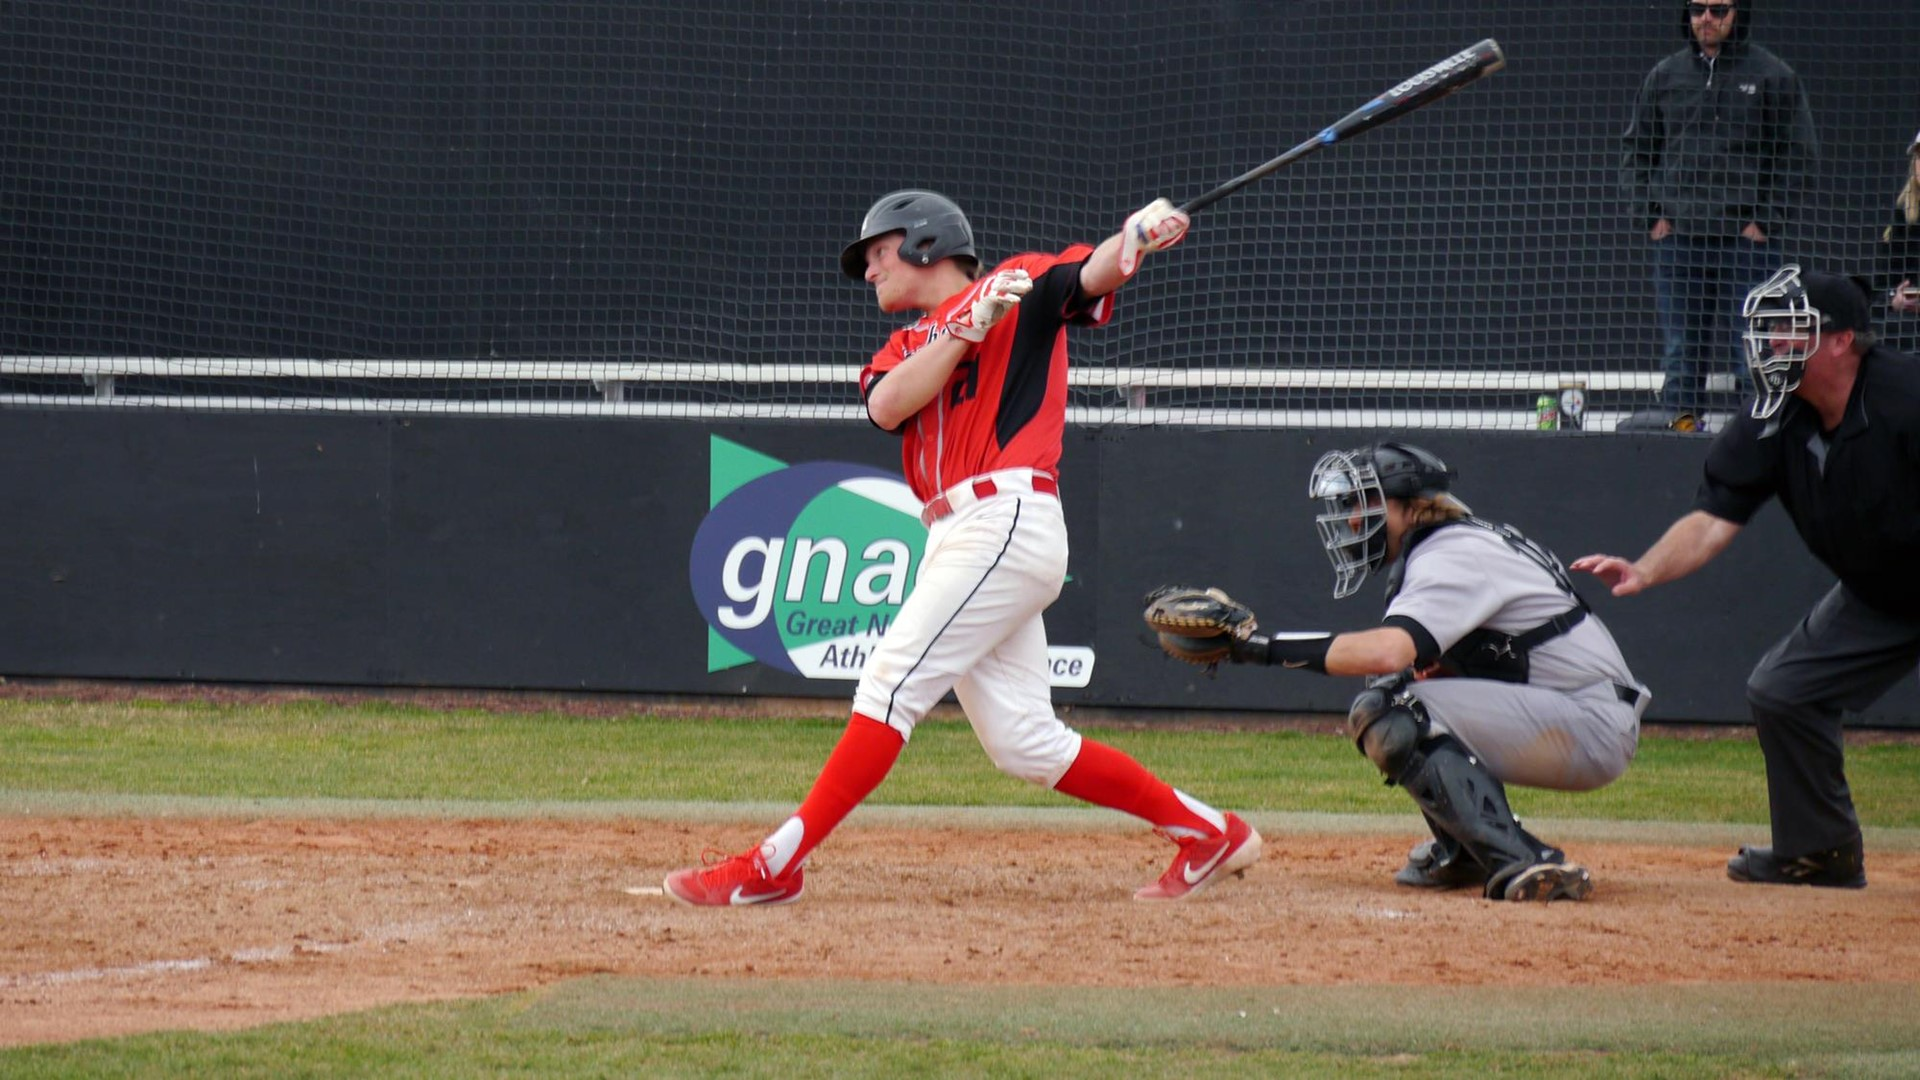 Shawn Grandmont (Lethbridge, Alta.) went 5-for-10 with four walks and five runs in four games for Northwest Nazarene this week. Photo: Northwest Nazarene University Athletics.